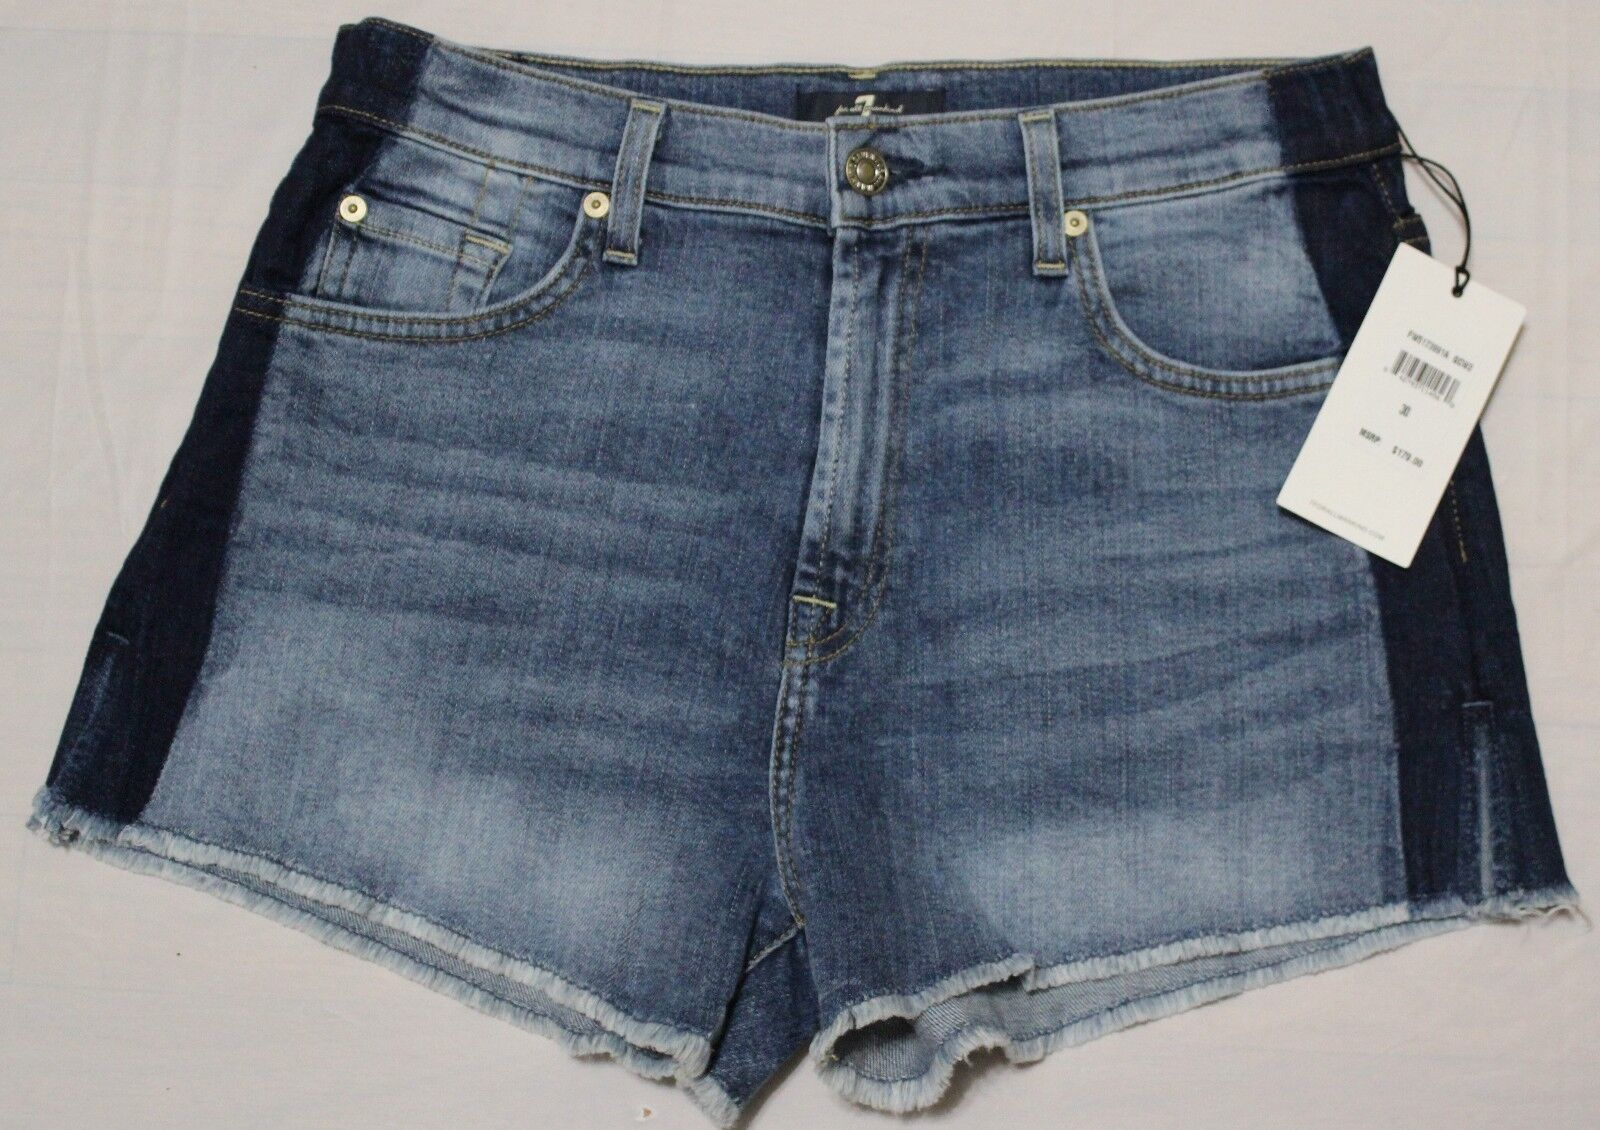 179 7 FOR ALL MANKIND TWO TONE DENIM SHORT US 30